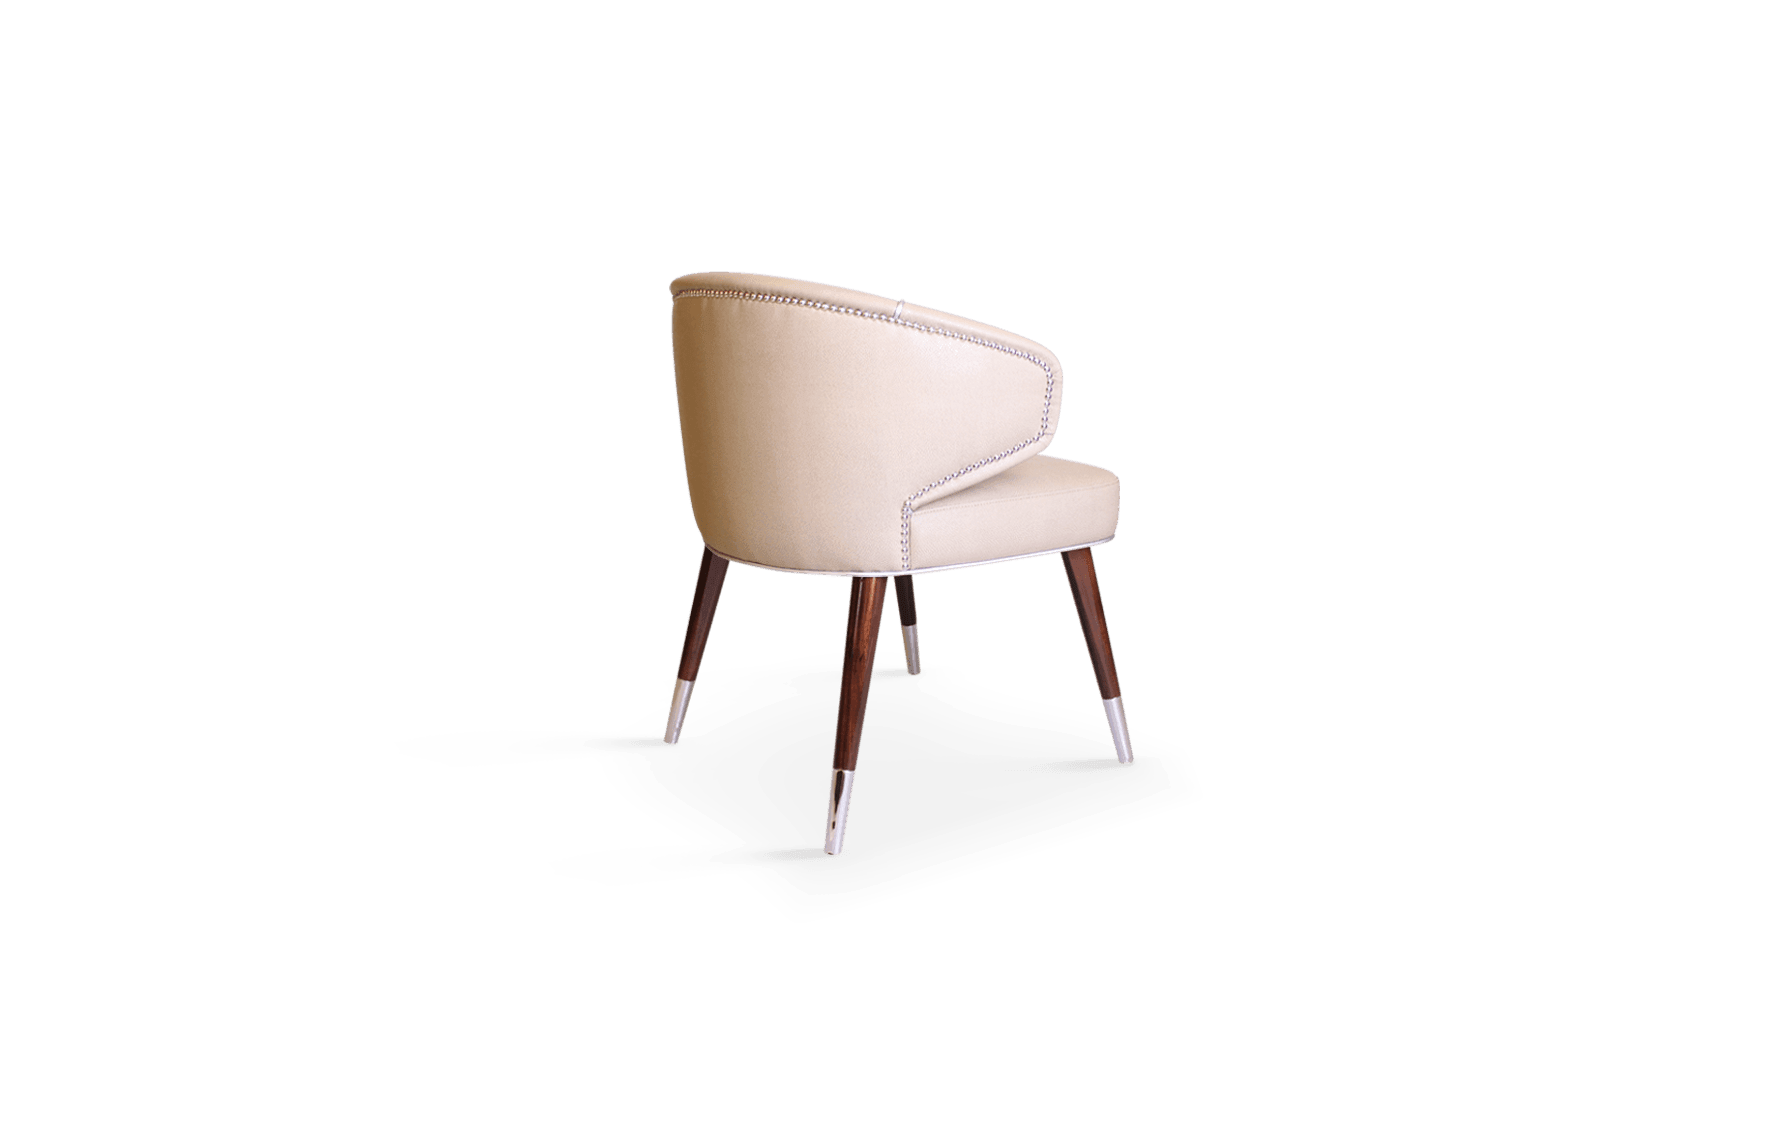 Tippi Mid-Century Modern Dining Chair in Pink Leather